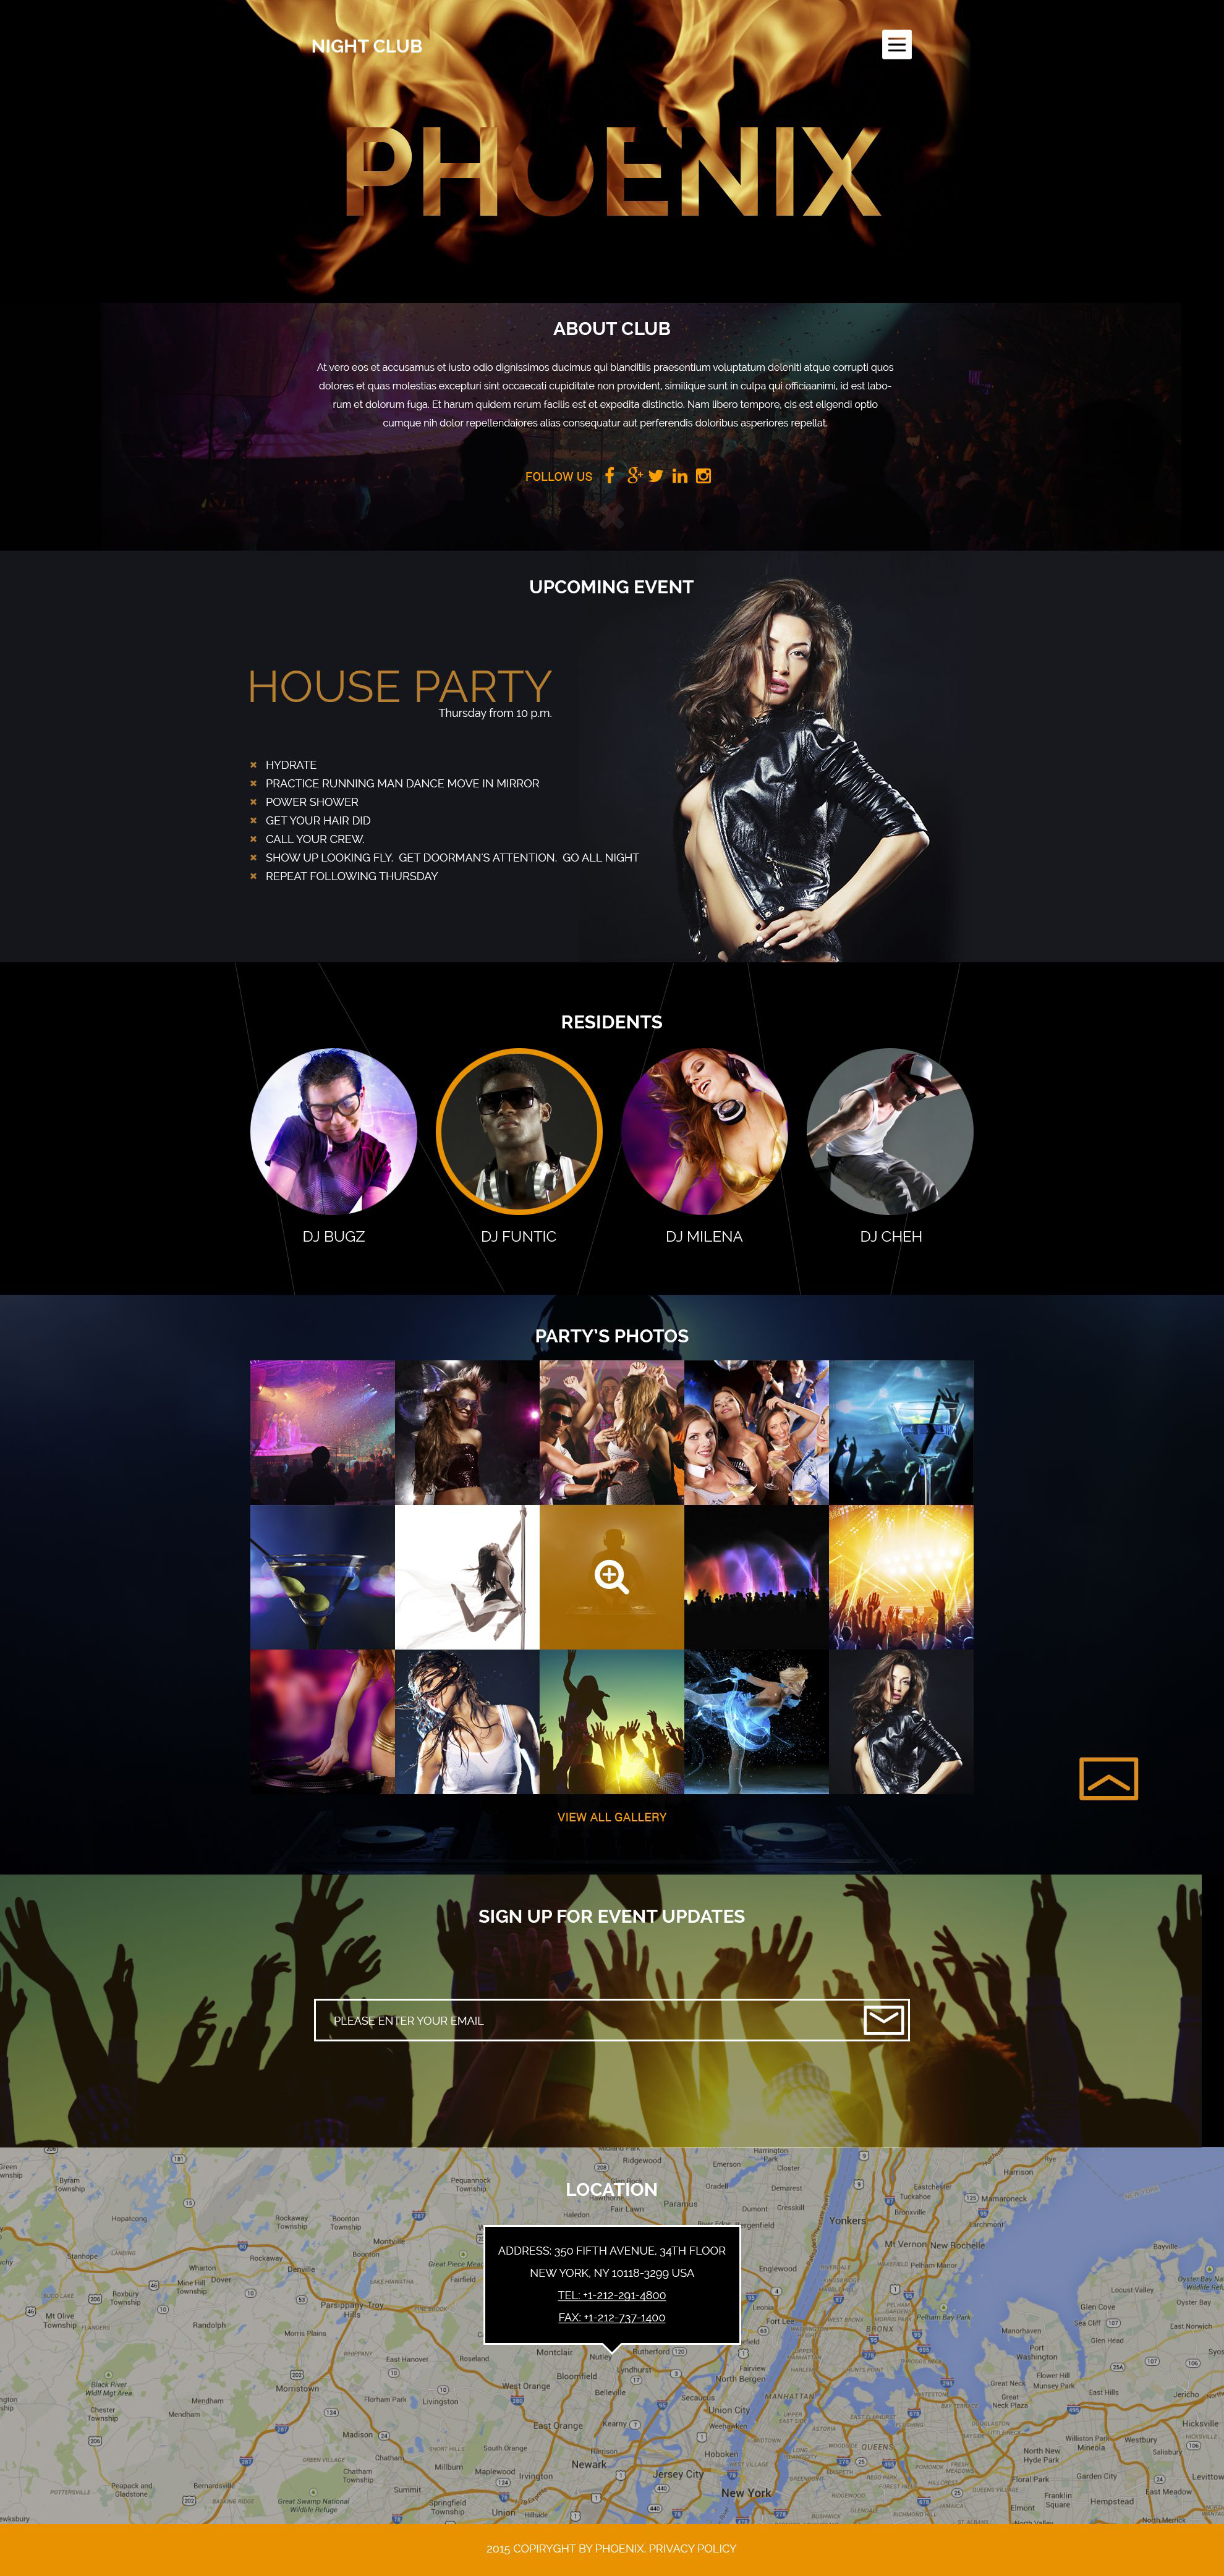 The Phoenix Night Club WordPress Design 53593, one of the best WordPress themes of its kind (most popular, online casino), also known as phoenix night club WordPress template, music WordPress template, dances WordPress template, dancers WordPress template, entertainment WordPress template, joy WordPress template, energy WordPress template, free drinks WordPress template, tickets WordPress template, party WordPress template, deejays WordPress template, dj WordPress template, events WordPress template, beats WordPress template, disks WordPress template, songs WordPress template, tunes WordPress template, rhythms WordPress template, gallery WordPress template, photos WordPress template, pictures WordPress template, guests WordPress template, participants WordPress template, interview WordPress template, stars WordPress template, artists WordPress template, funs WordPress template, booking WordPress template, mob WordPress template, glamour girls WordPress template, party WordPress template, MC cocktail and related with phoenix night club, music, dances, dancers, entertainment, joy, energy, free drinks, tickets, party, deejays, dj, events, beats, disks, songs, tunes, rhythms, gallery, photos, pictures, guests, participants, interview, stars, artists, funs, booking, mob, glamour girls, party, MC cocktail, etc.